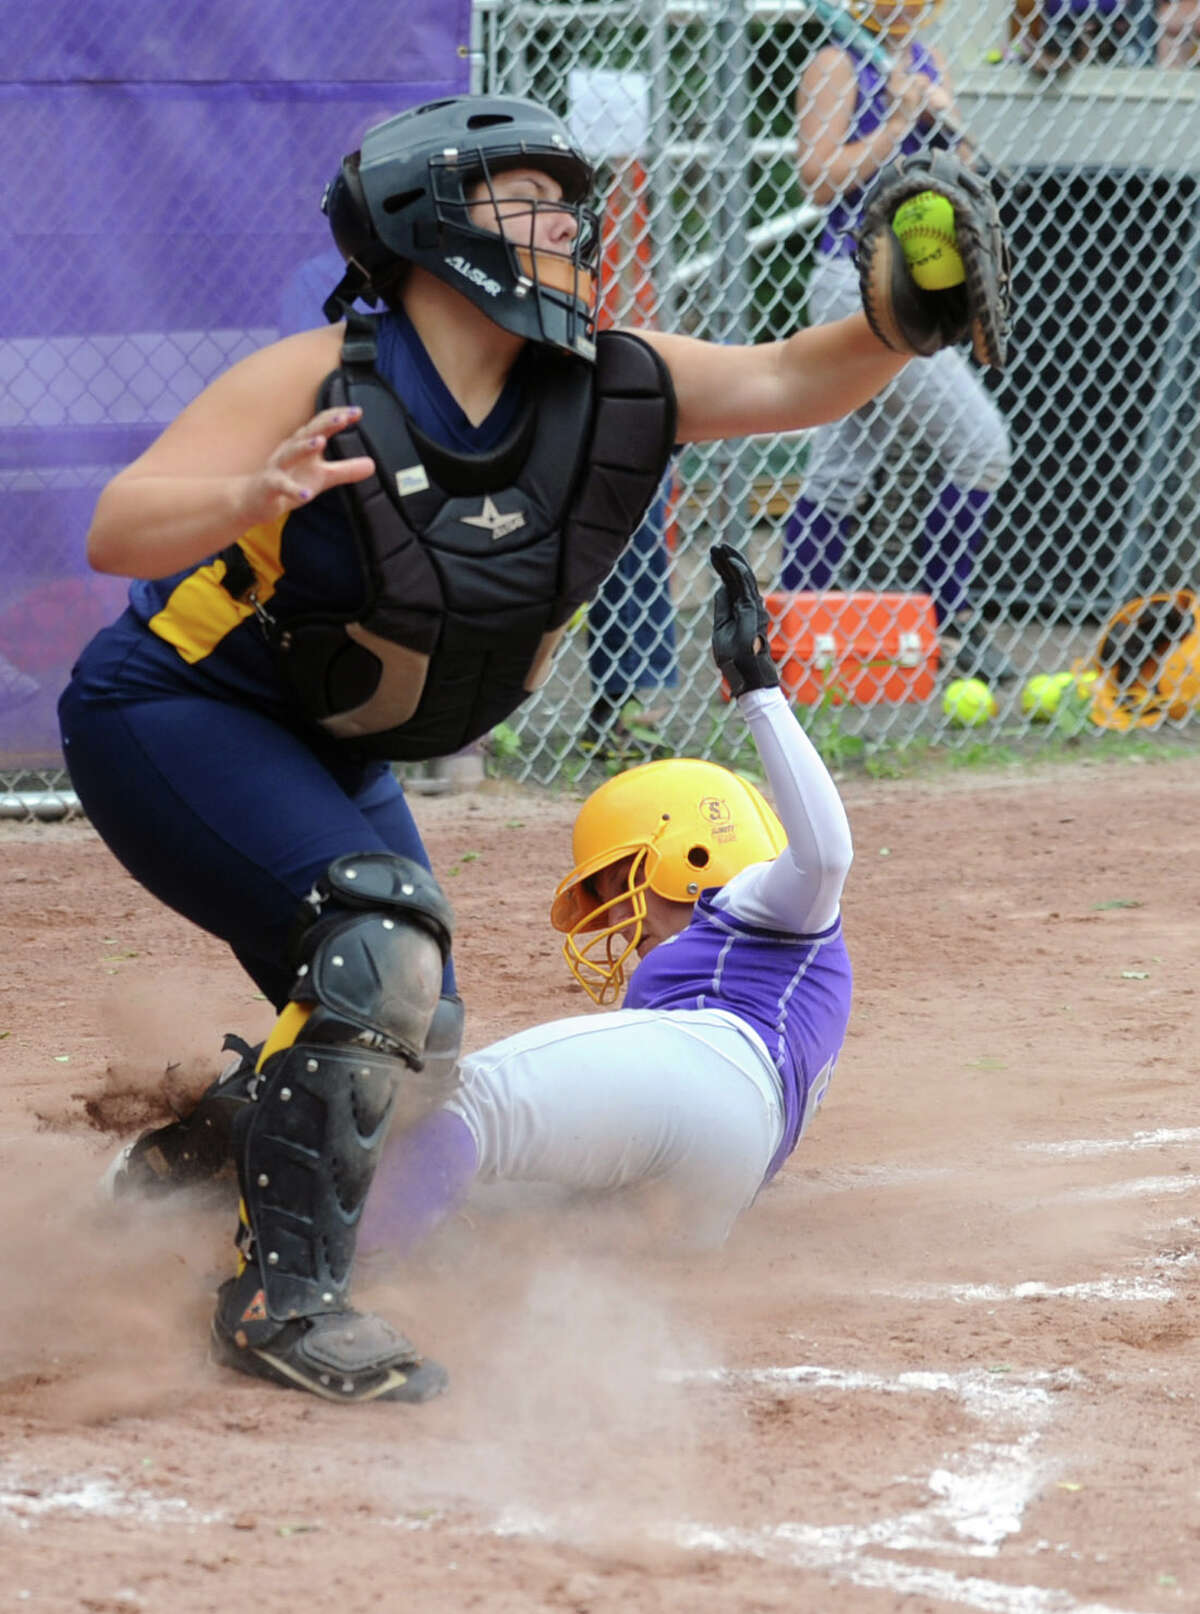 Westhill's Allyson Souza scores a run as she slides safely into home while Mercy's catcher Tyler Keegan reaches for the ball during Friday's softball game against Mercy in Stamford on June 1, 2012.